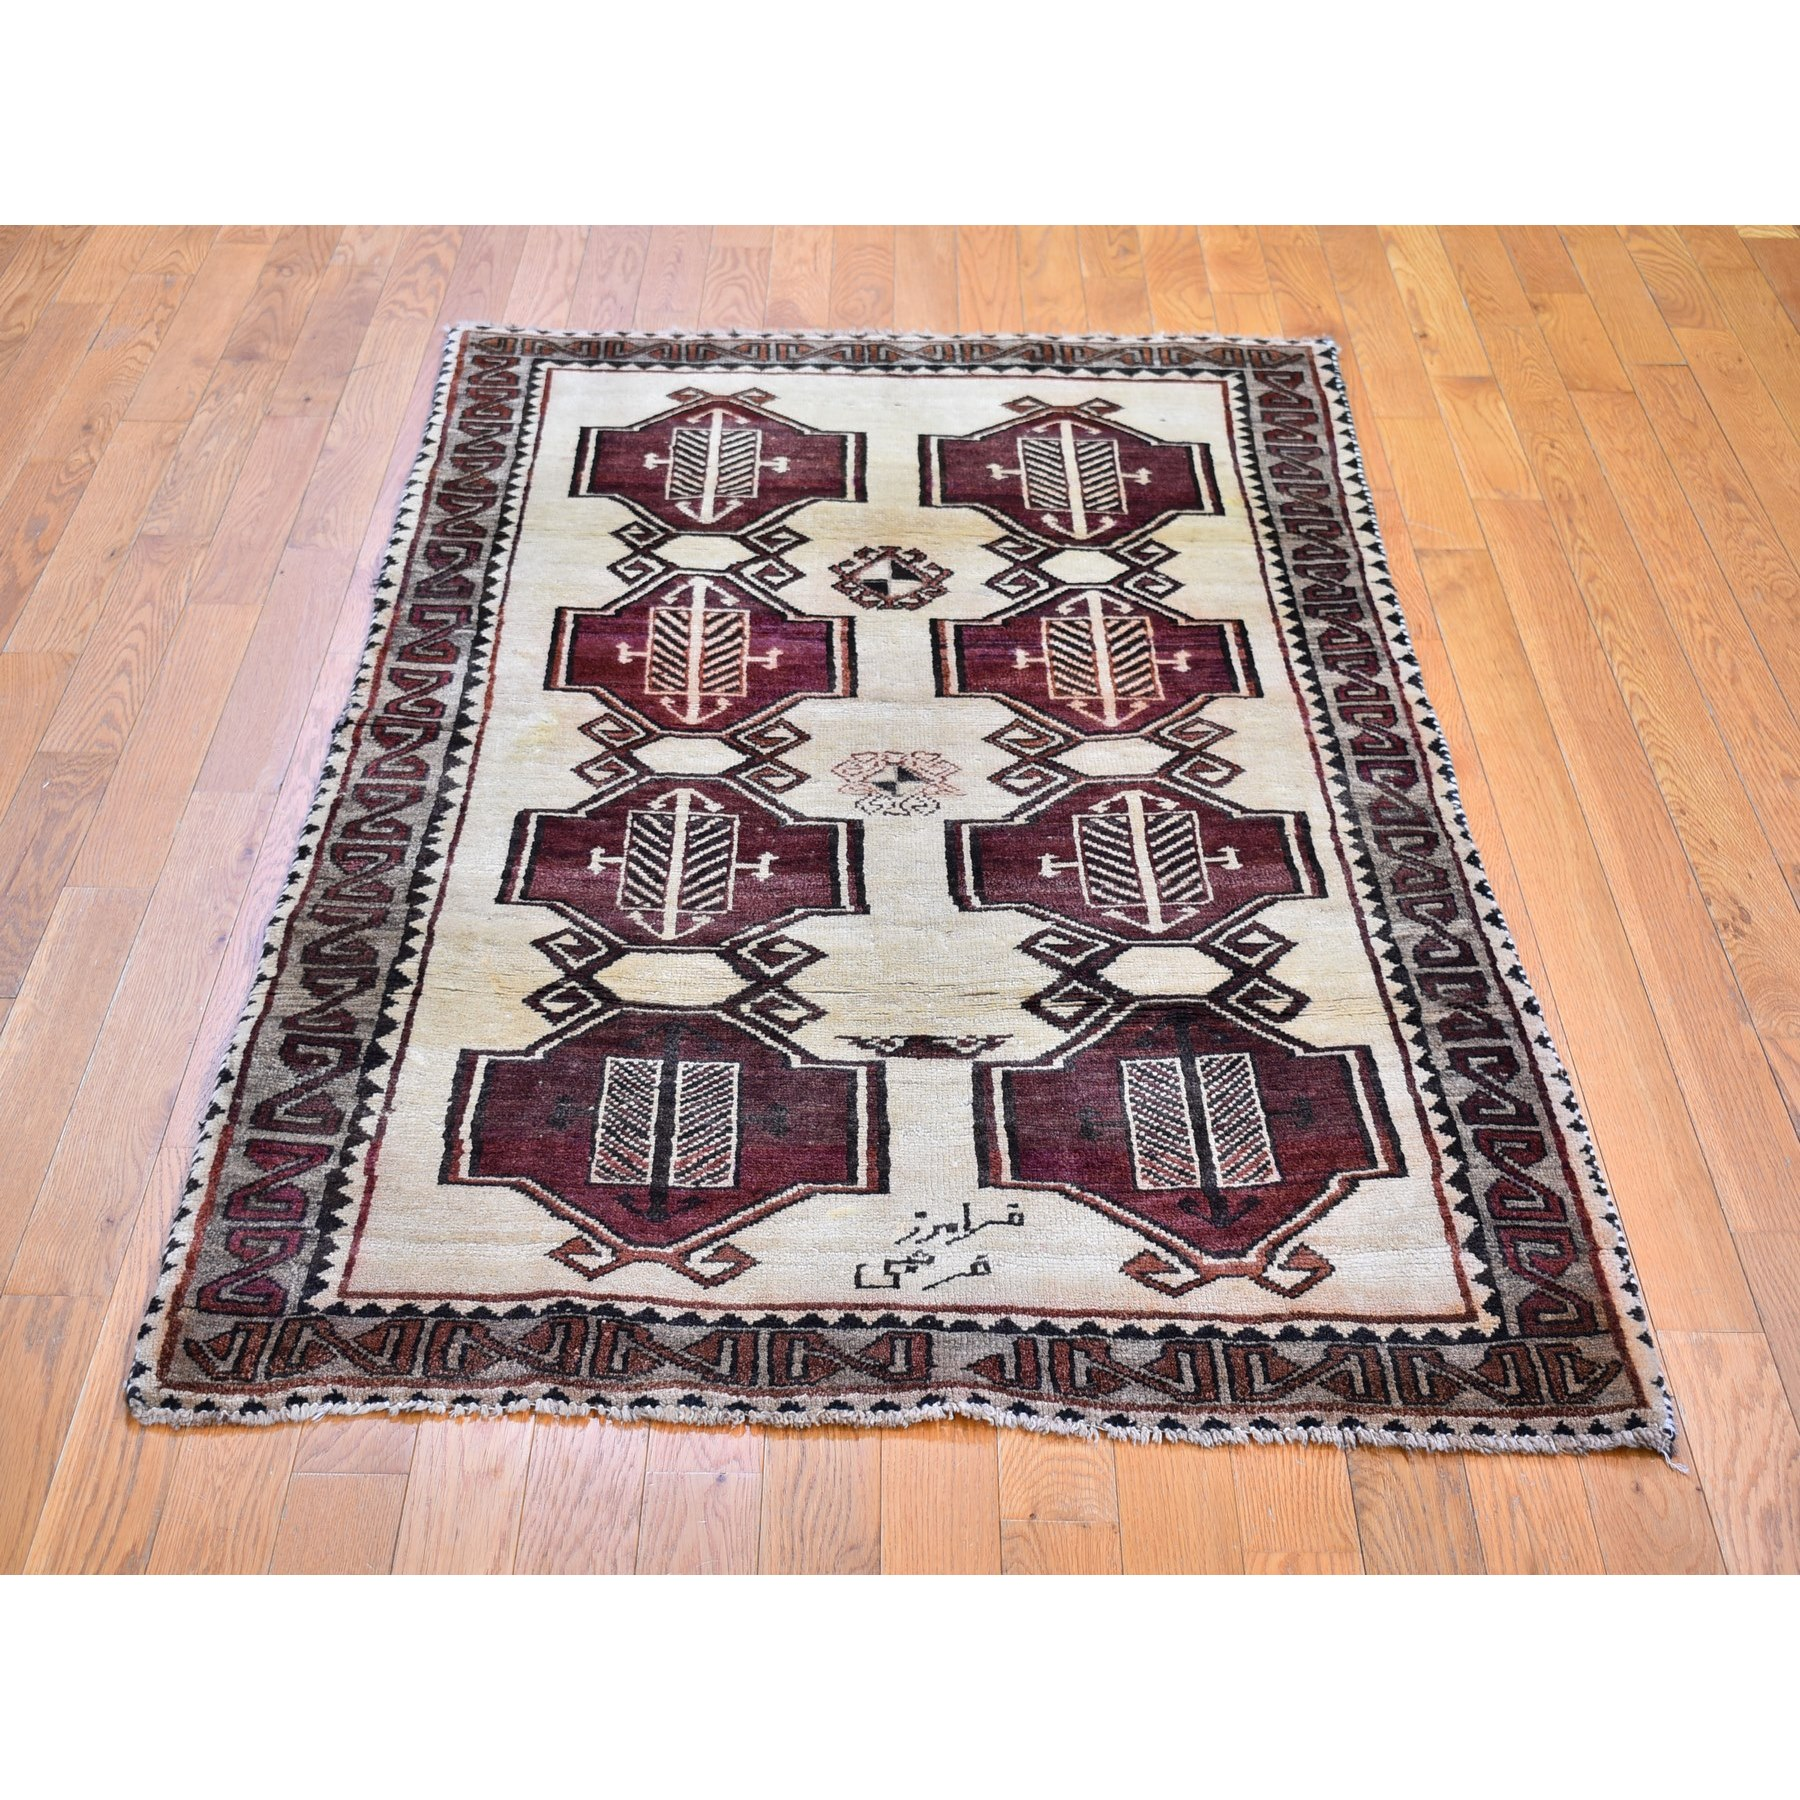 """3'7""""x6' Vintage Persian Gabbeh Signed with Geometric Medallions Pure Wool Hand Knotted Oriental Rug"""